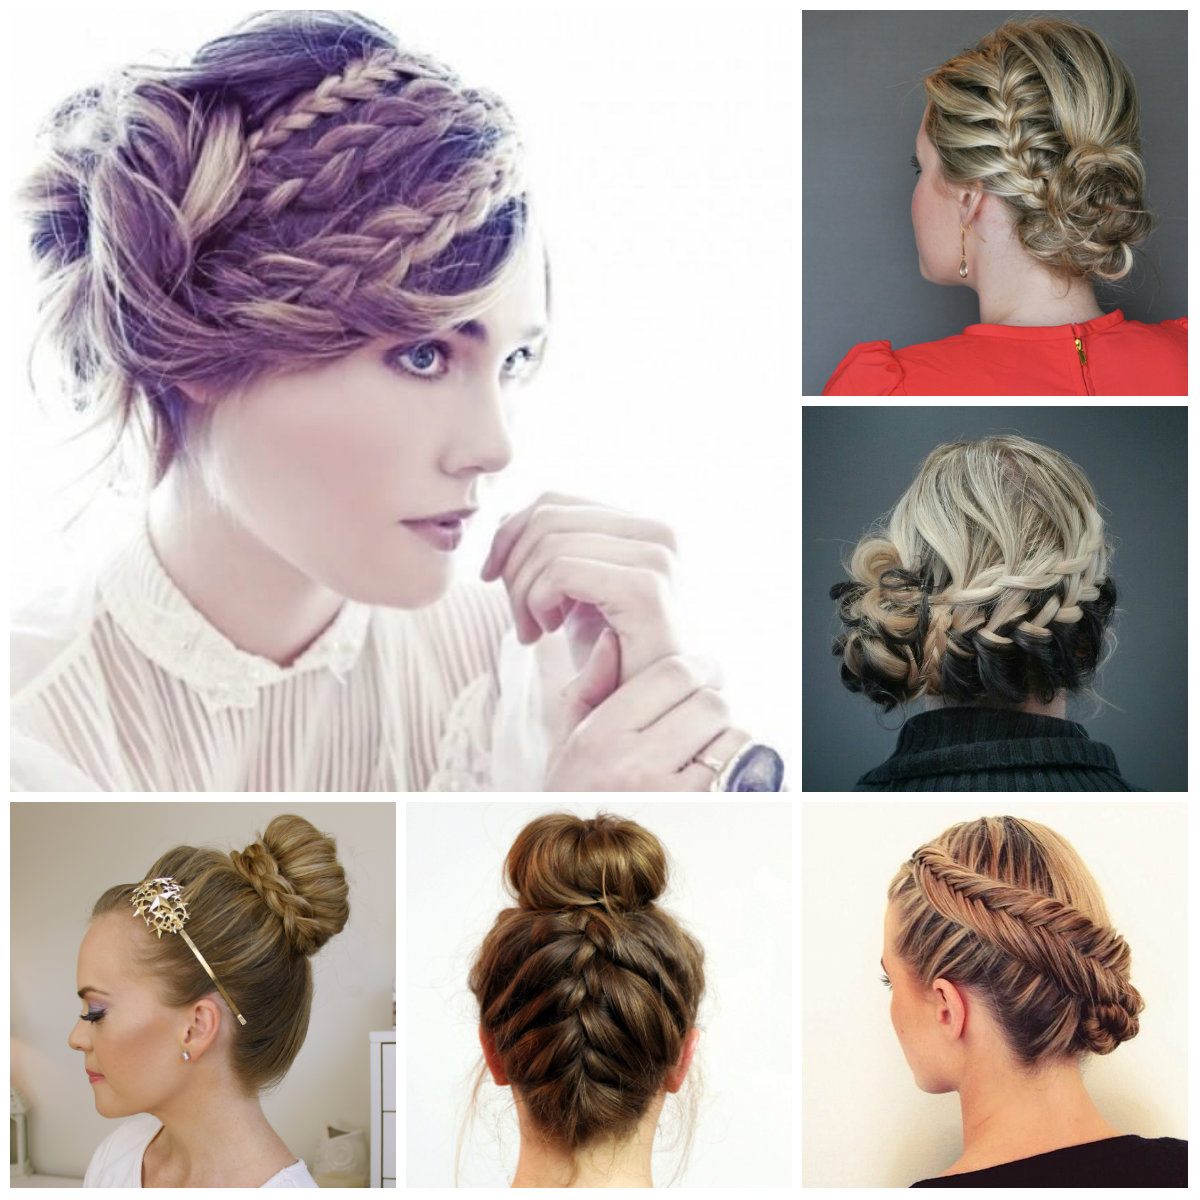 Groovy Coolest Braided Updo Hairstyles 2016 2017 Haircuts Hairstyles Short Hairstyles For Black Women Fulllsitofus